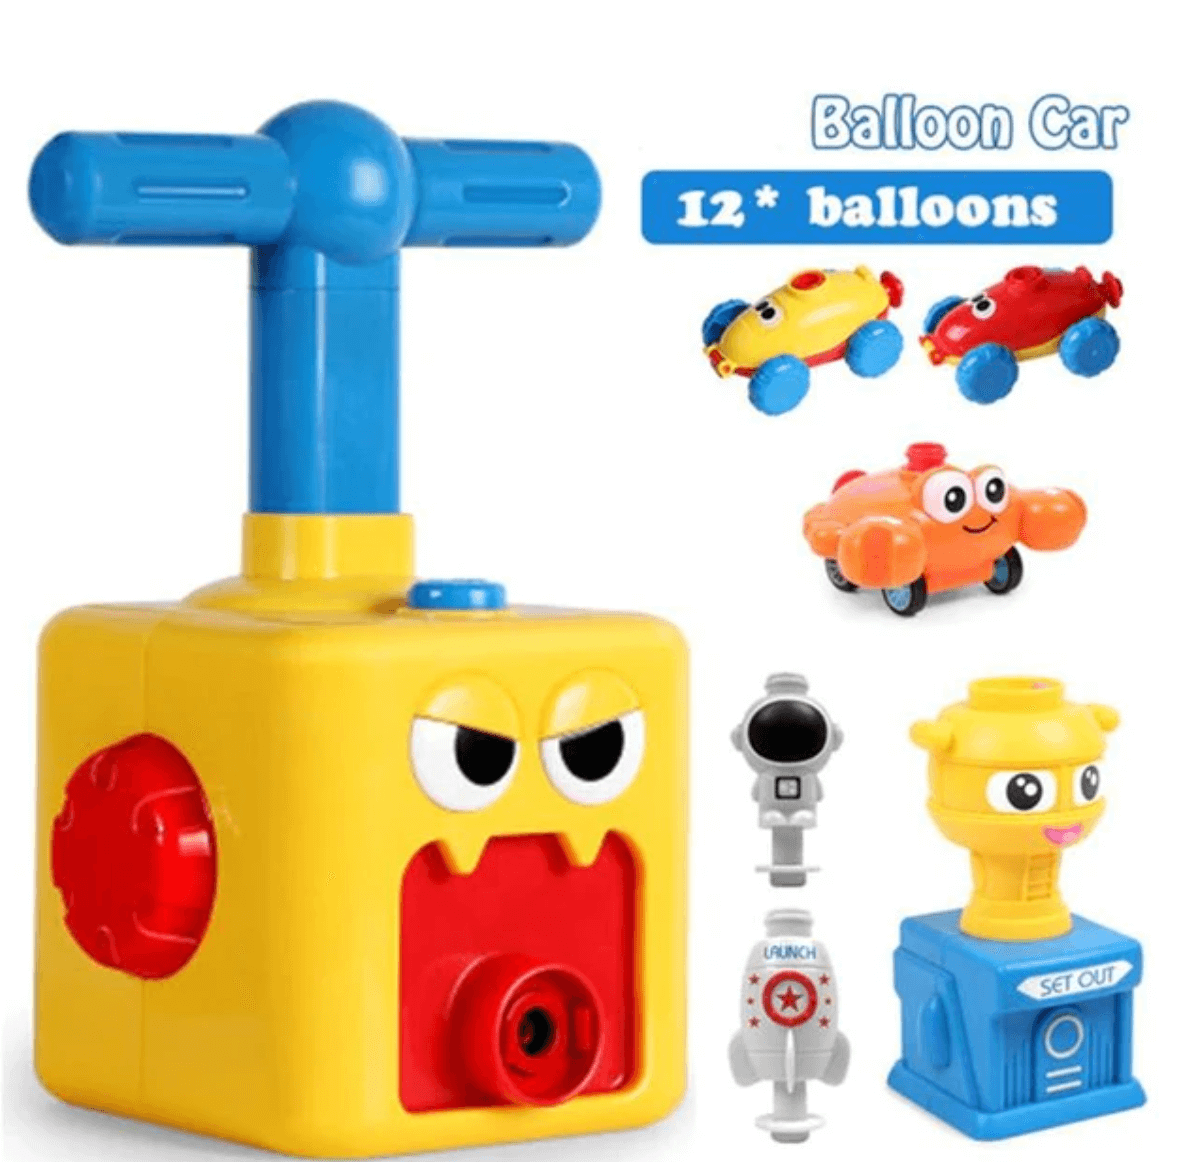 Balloon Launcher Car Toy Set (50% OFF)